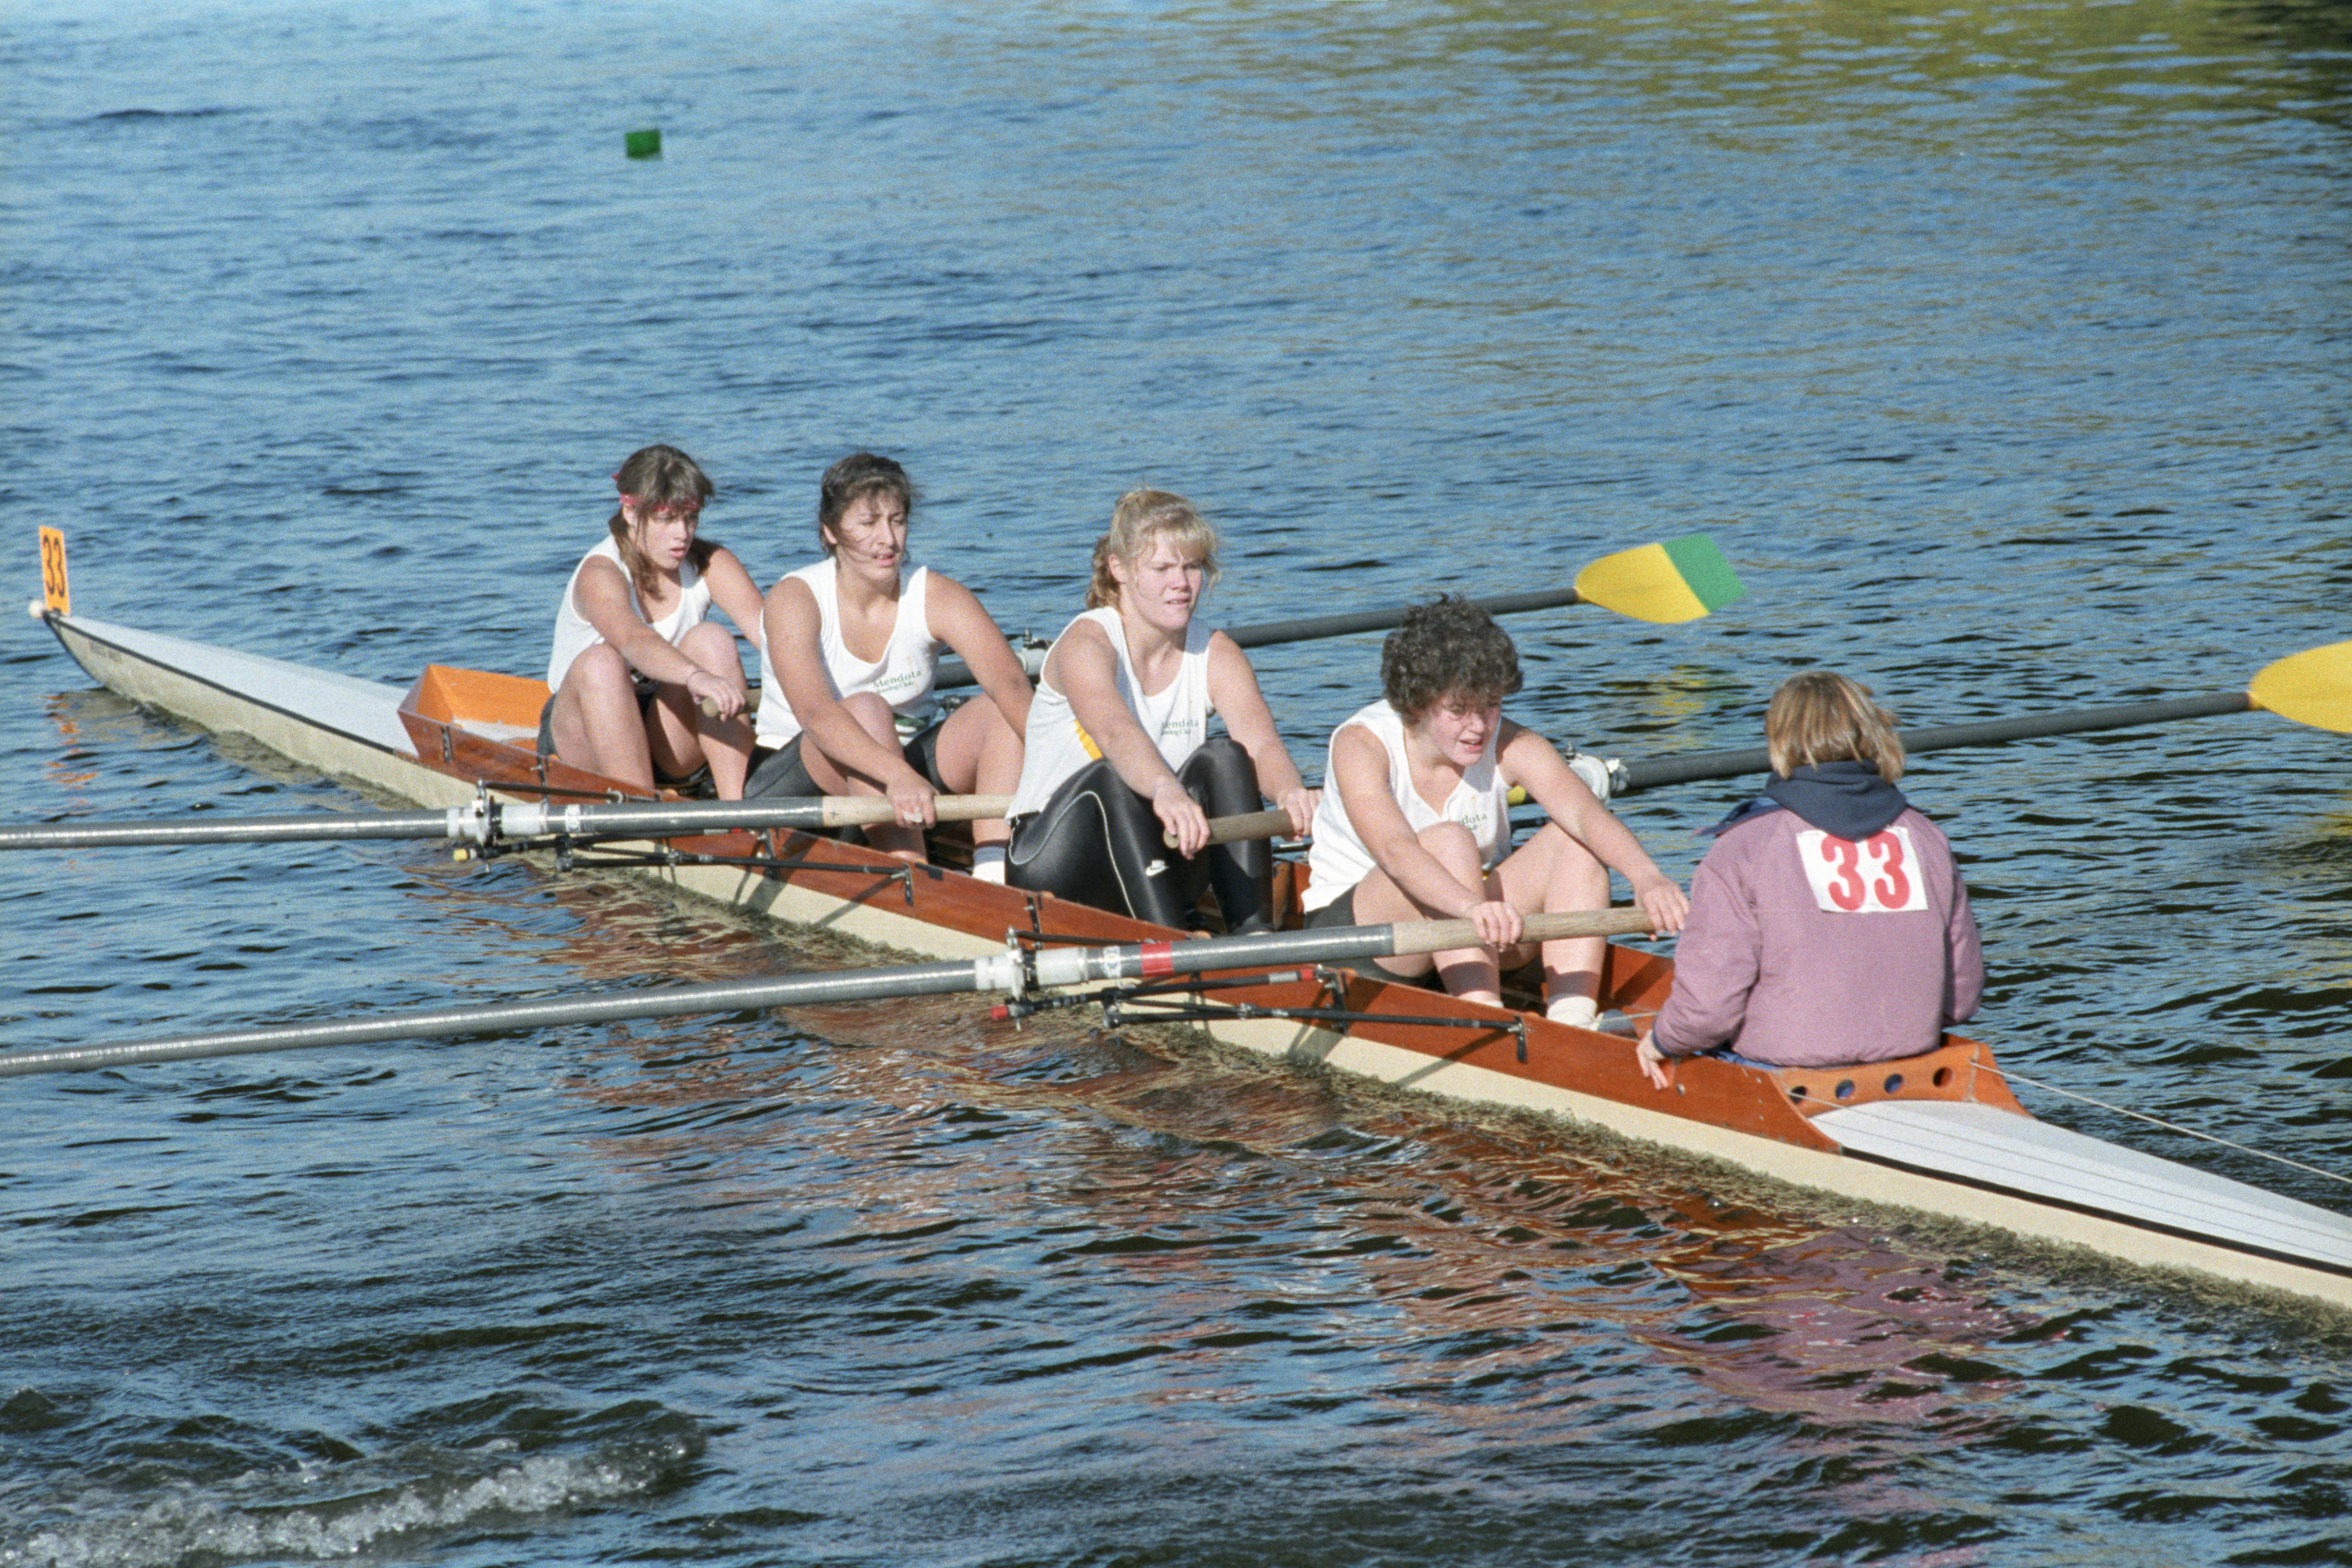 Sport Graphics, Rowing Photos, Complete coverage of the FISA